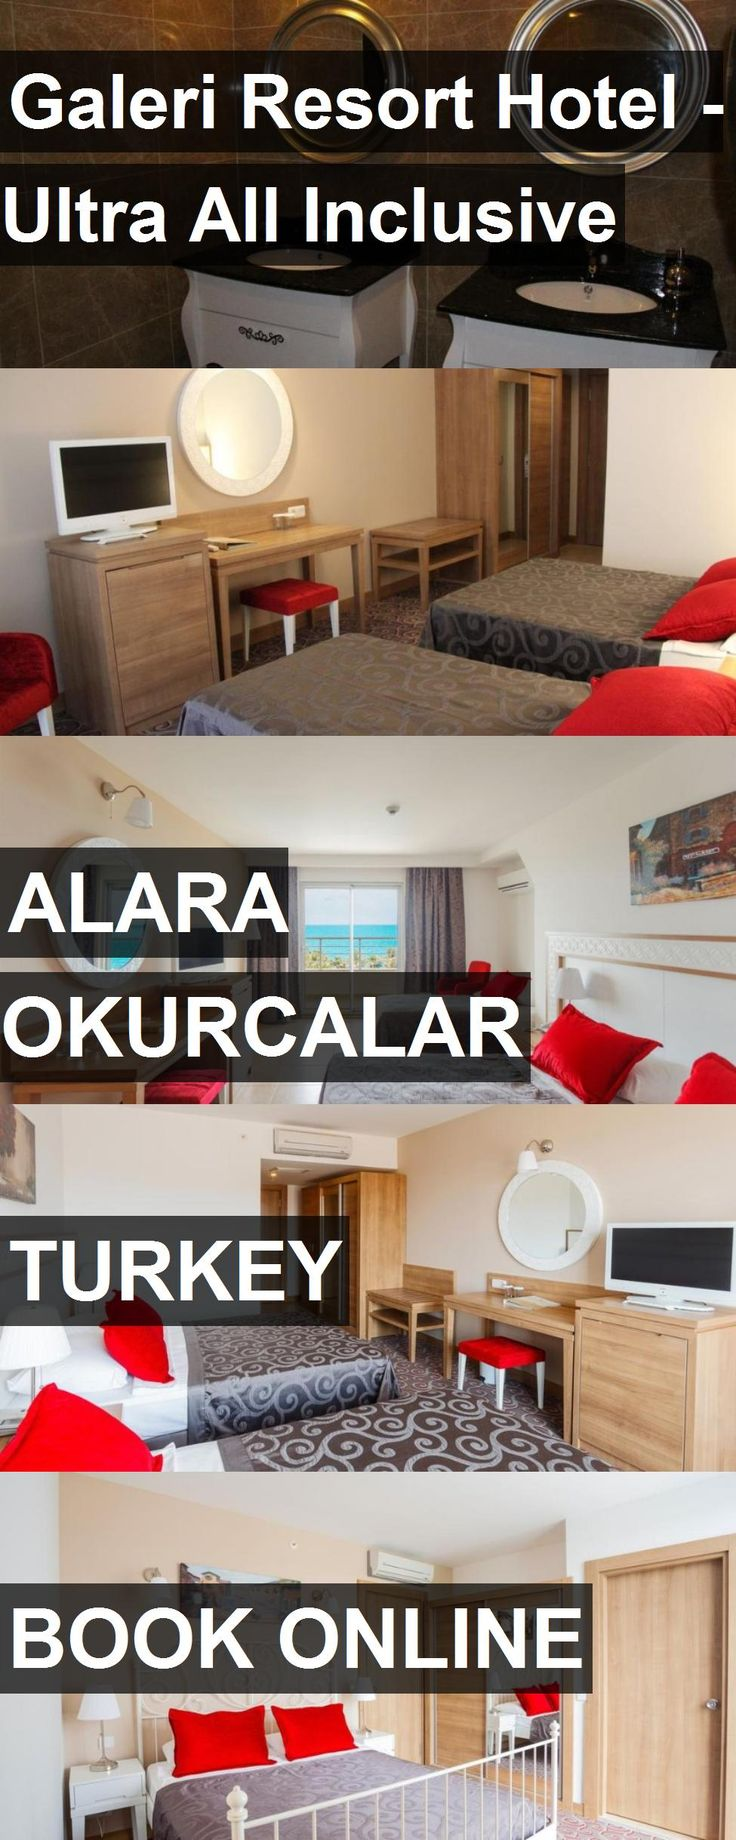 Hotel Galeri Resort Hotel - Ultra All Inclusive in Alara Okurcalar, Turkey. For more information, photos, reviews and best prices please follow the link. #Turkey #AlaraOkurcalar #GaleriResortHotel-UltraAllInclusive #hotel #travel #vacation